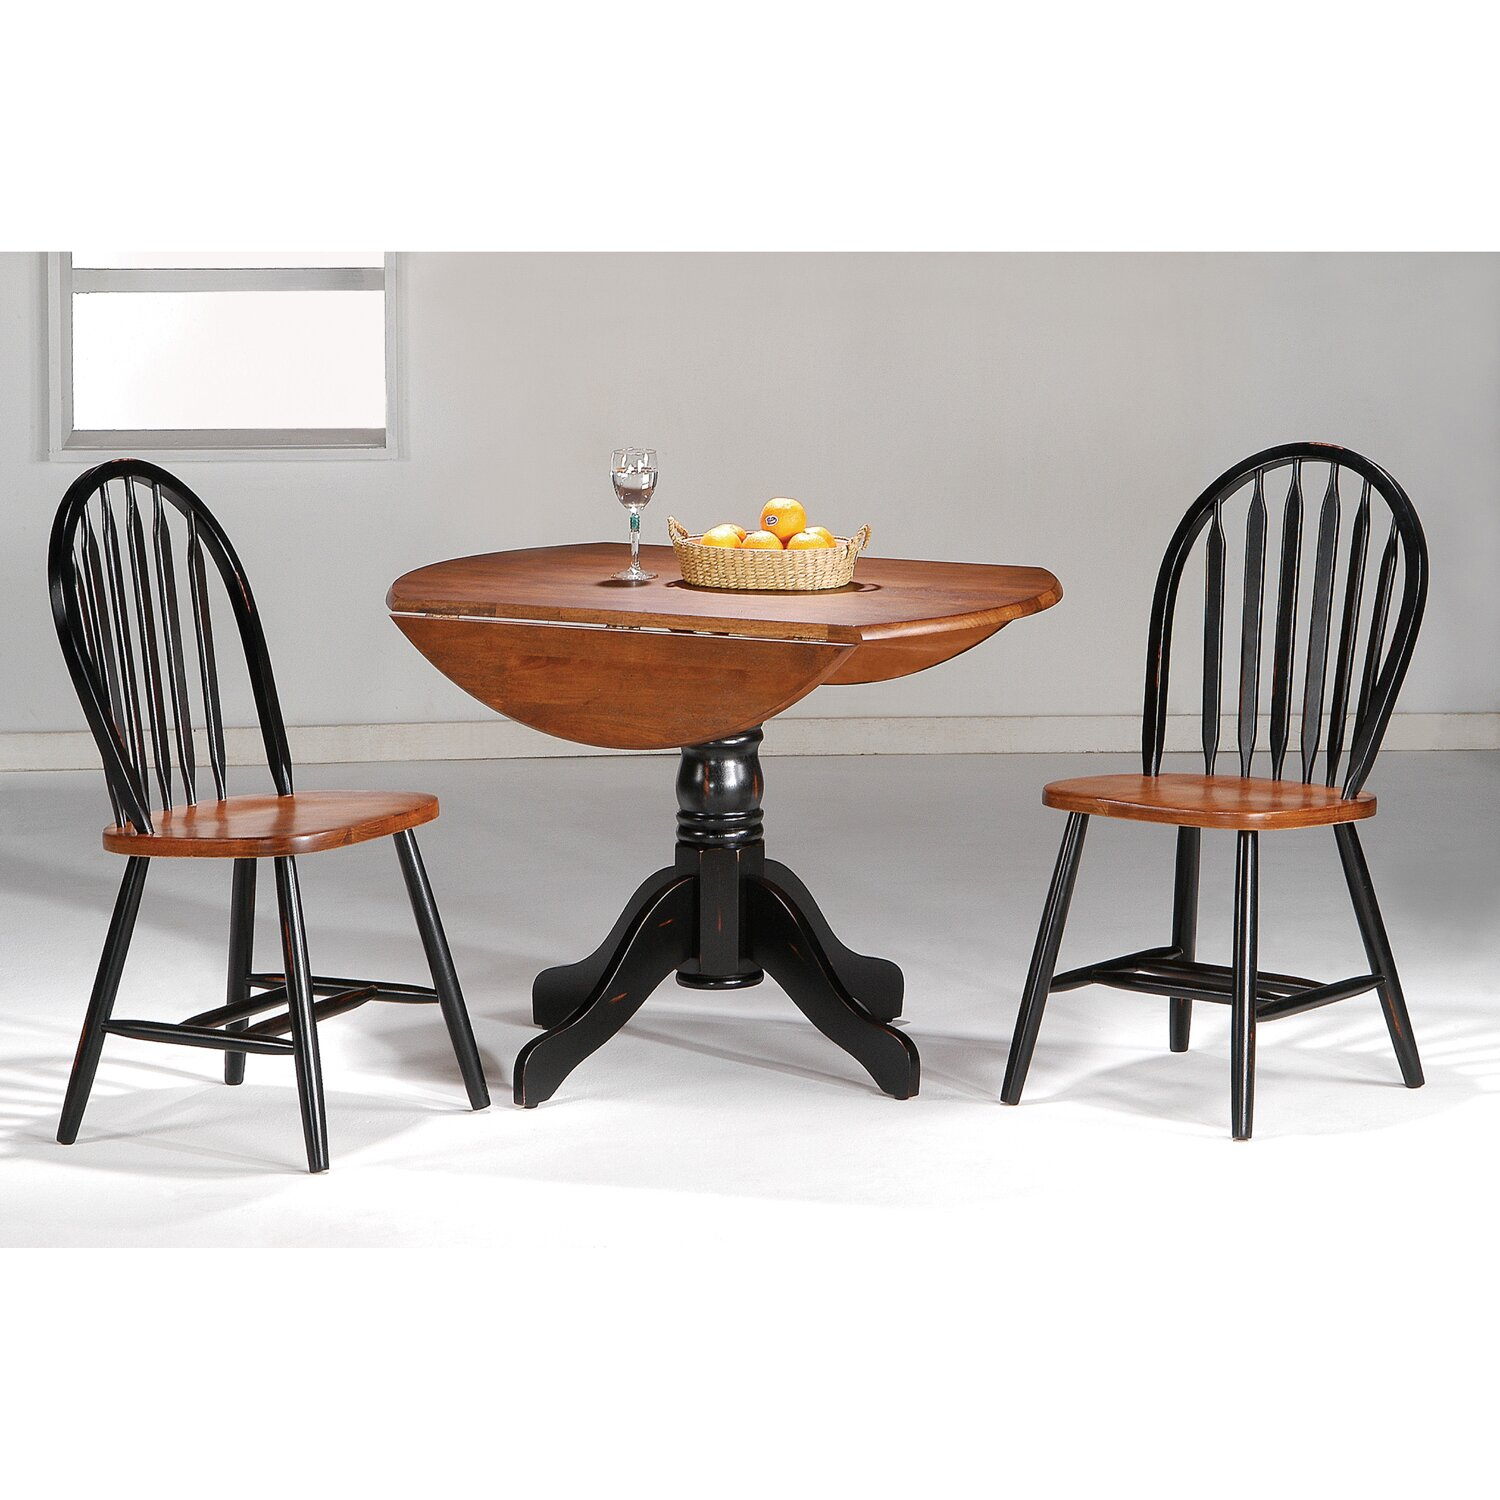 Hazelwood home 3 piece dining set reviews wayfair for Kitchen dining sets on sale